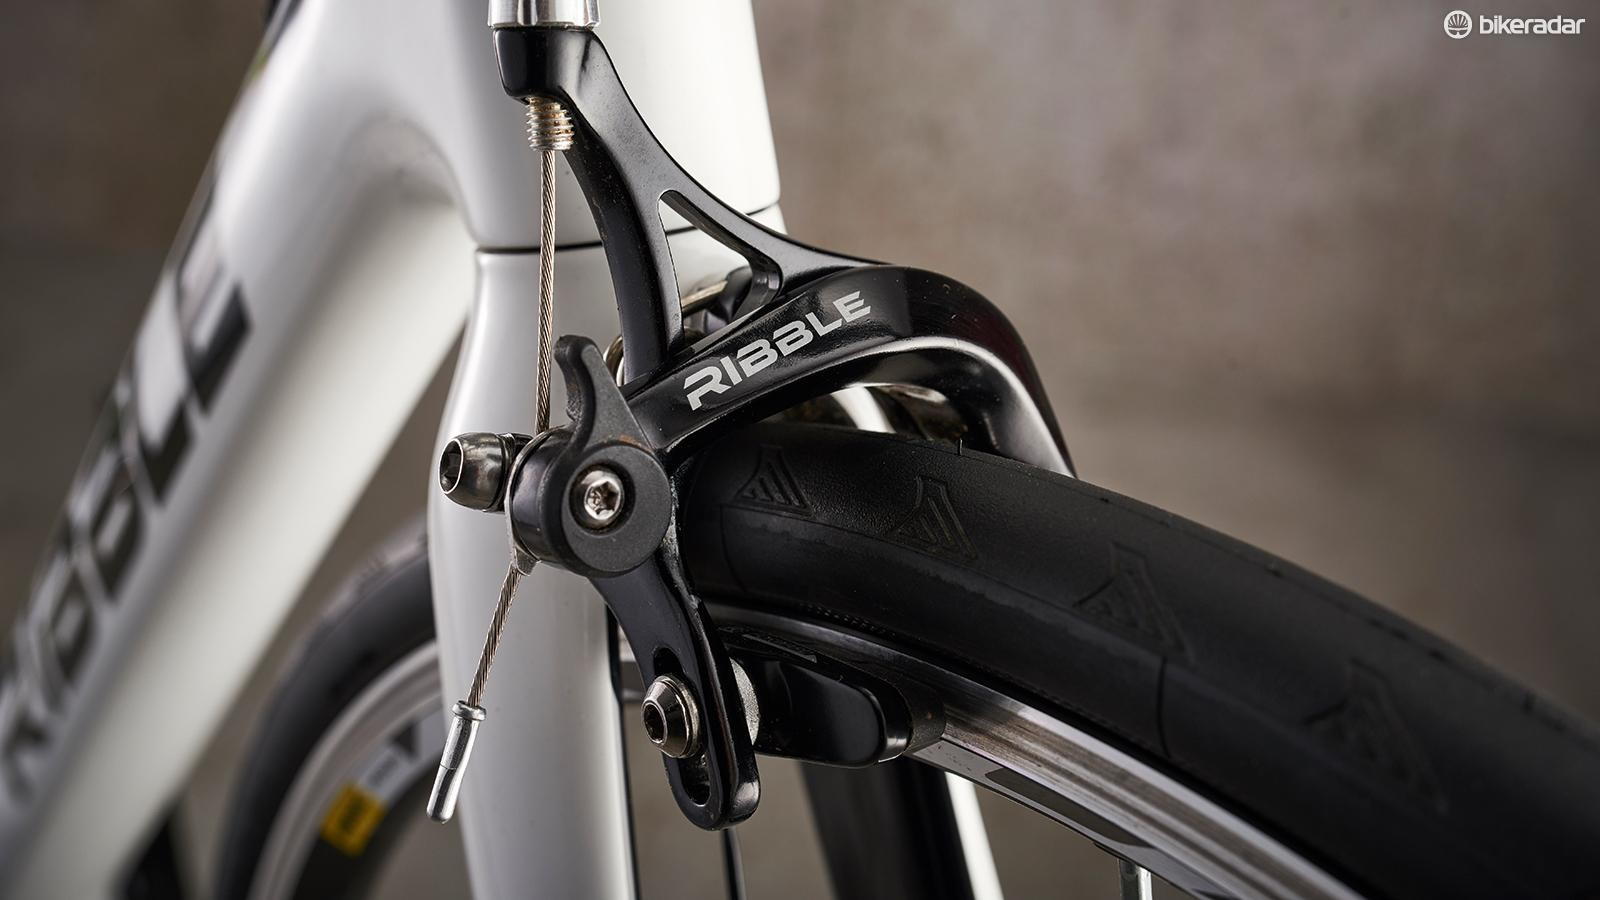 Ribble provides the brakes too, dual-pivot options